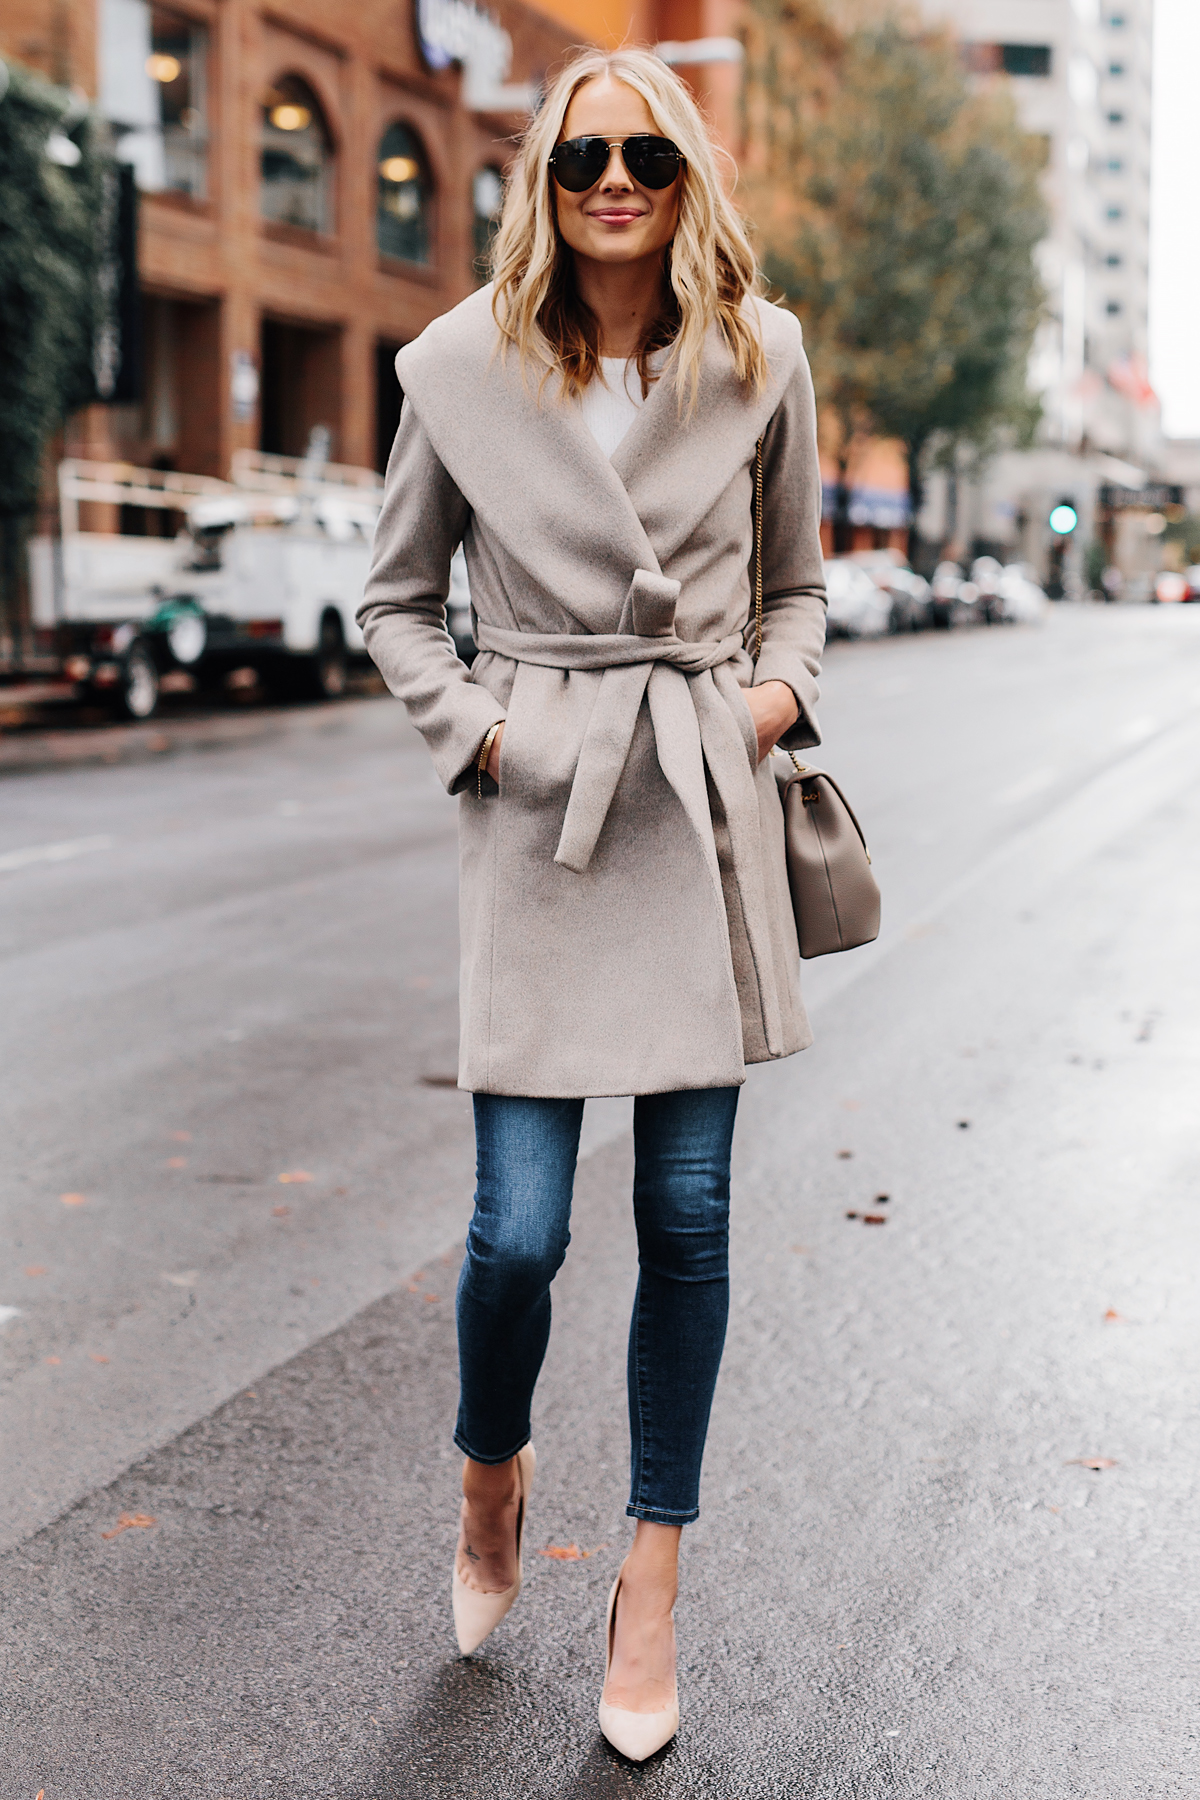 Blonde Woman Wearing Ann Taylor Beige Wrap Coat Denim Skinny Jeans Beige Pumps Outfit Fashion Jackson San Diego Fashion Blogger Street Style